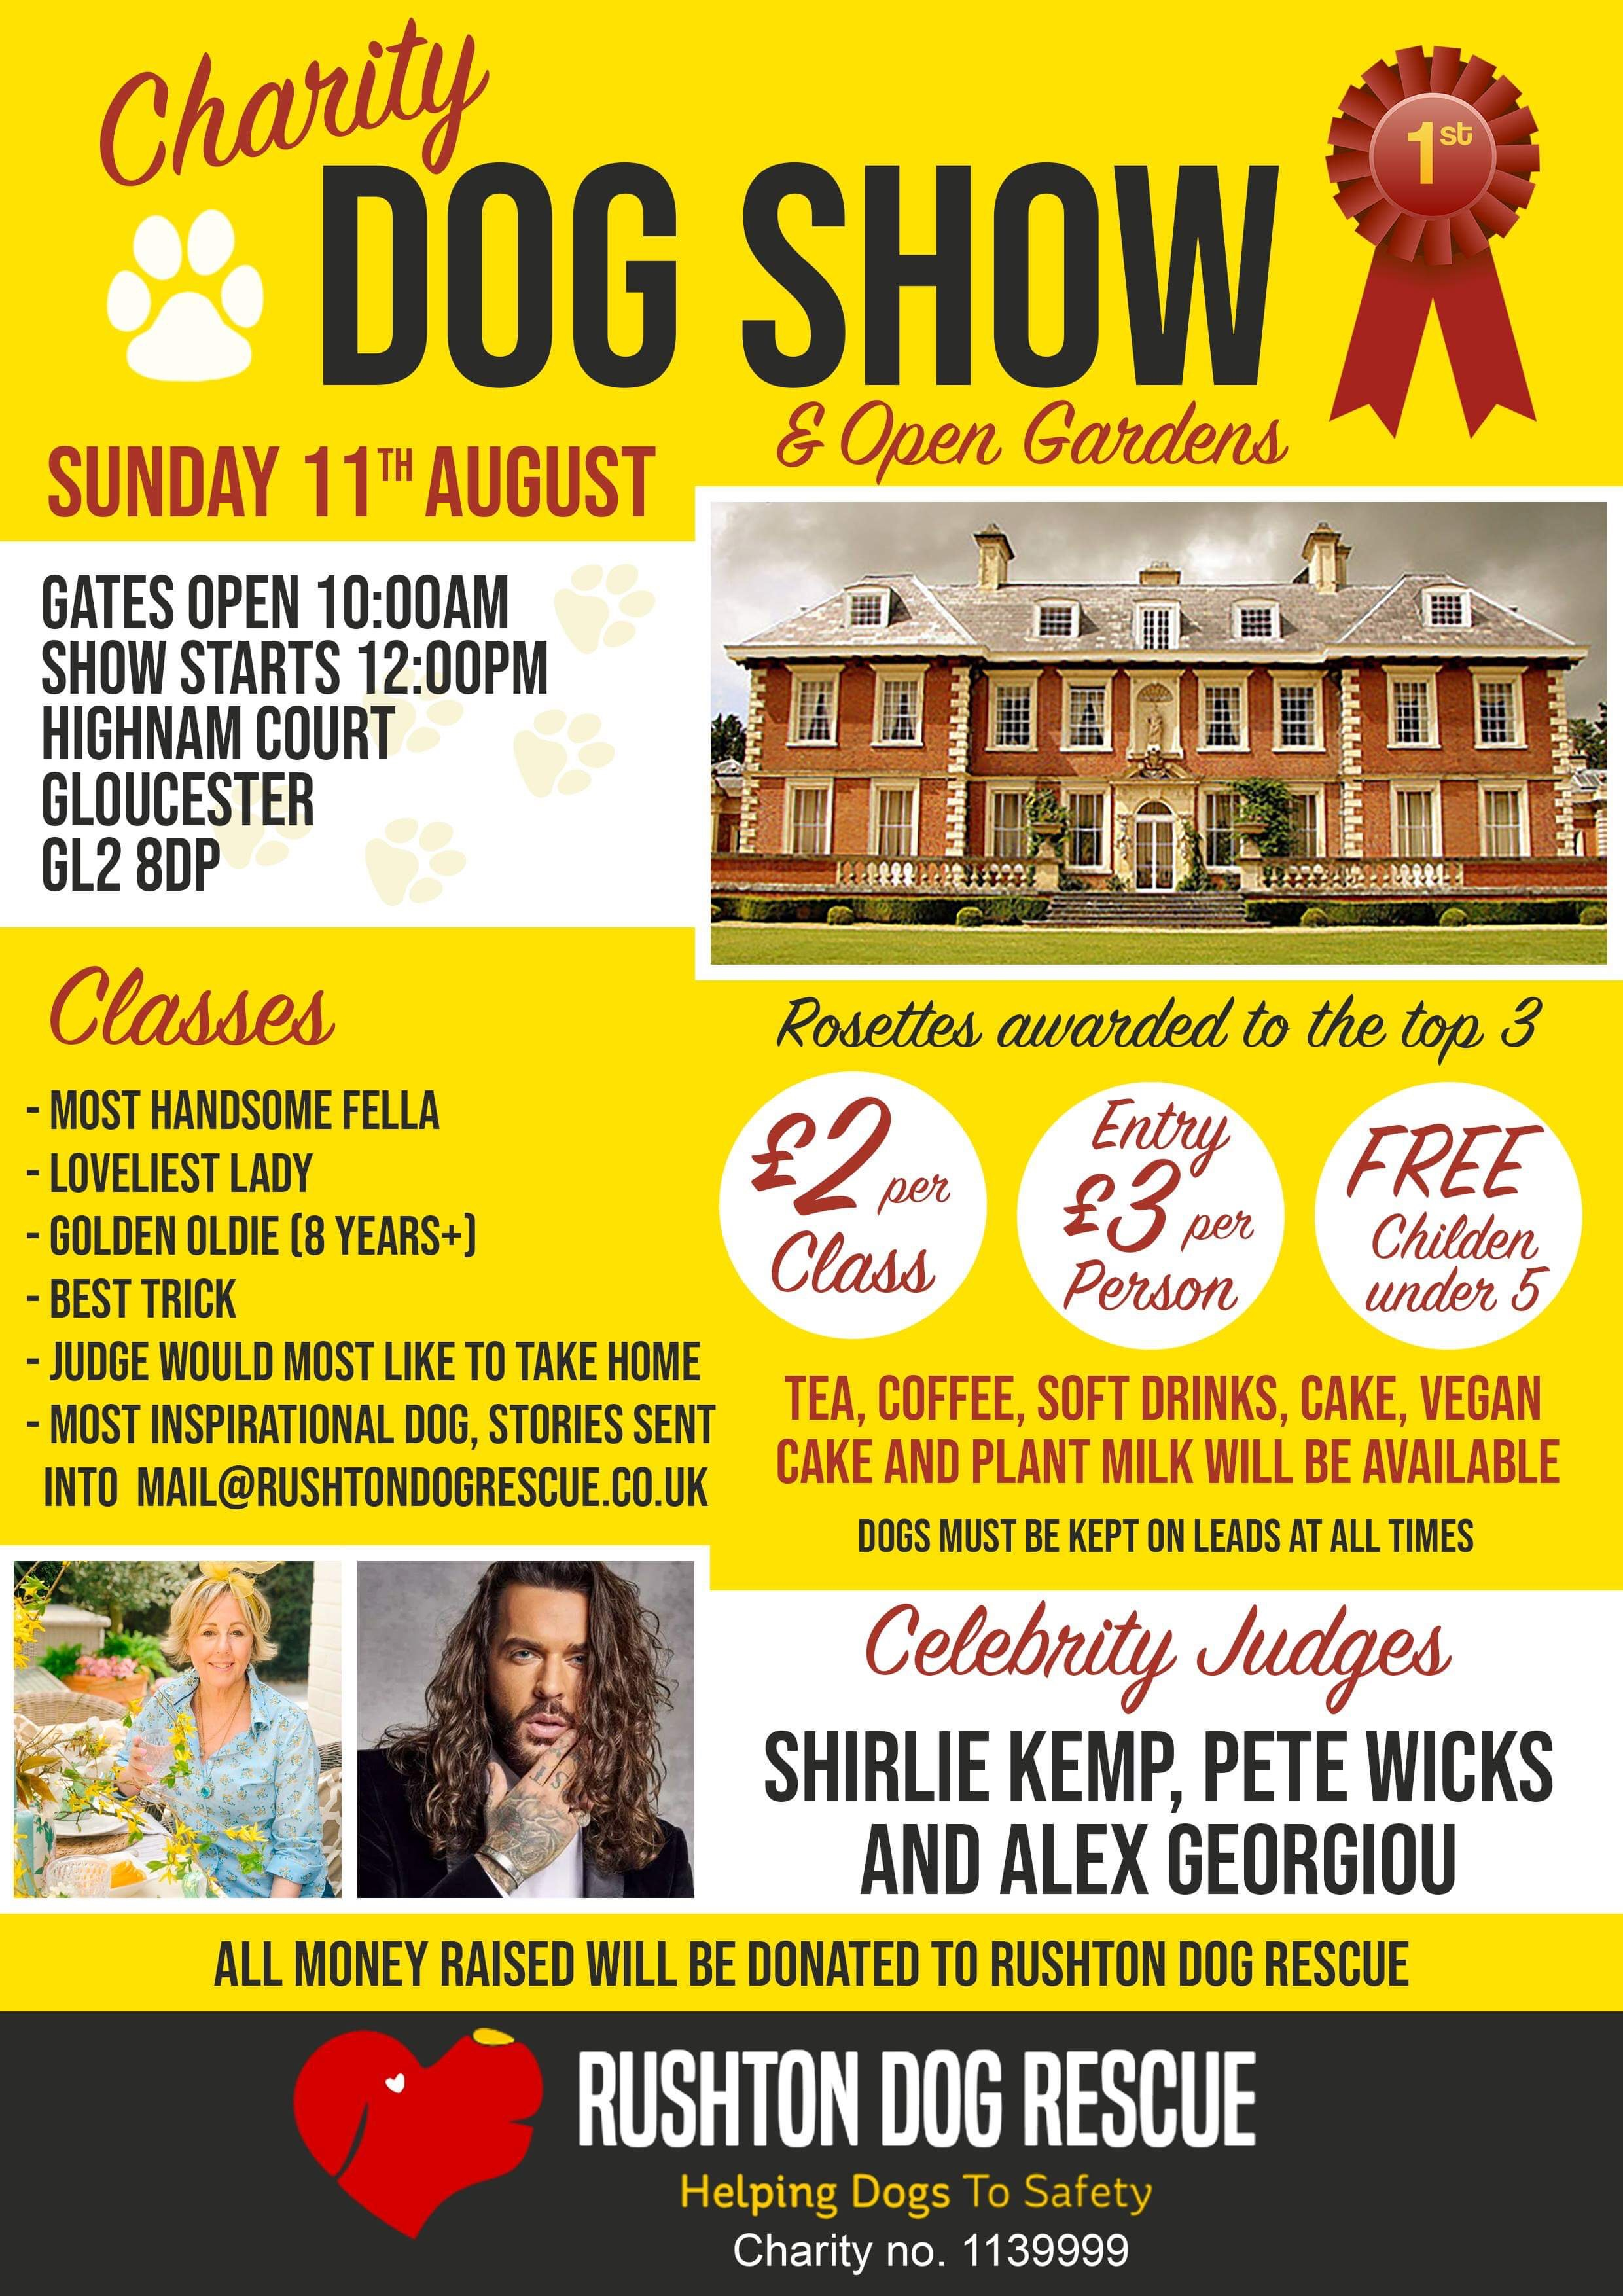 Charity Dog Show - Sunday August 11th 2019